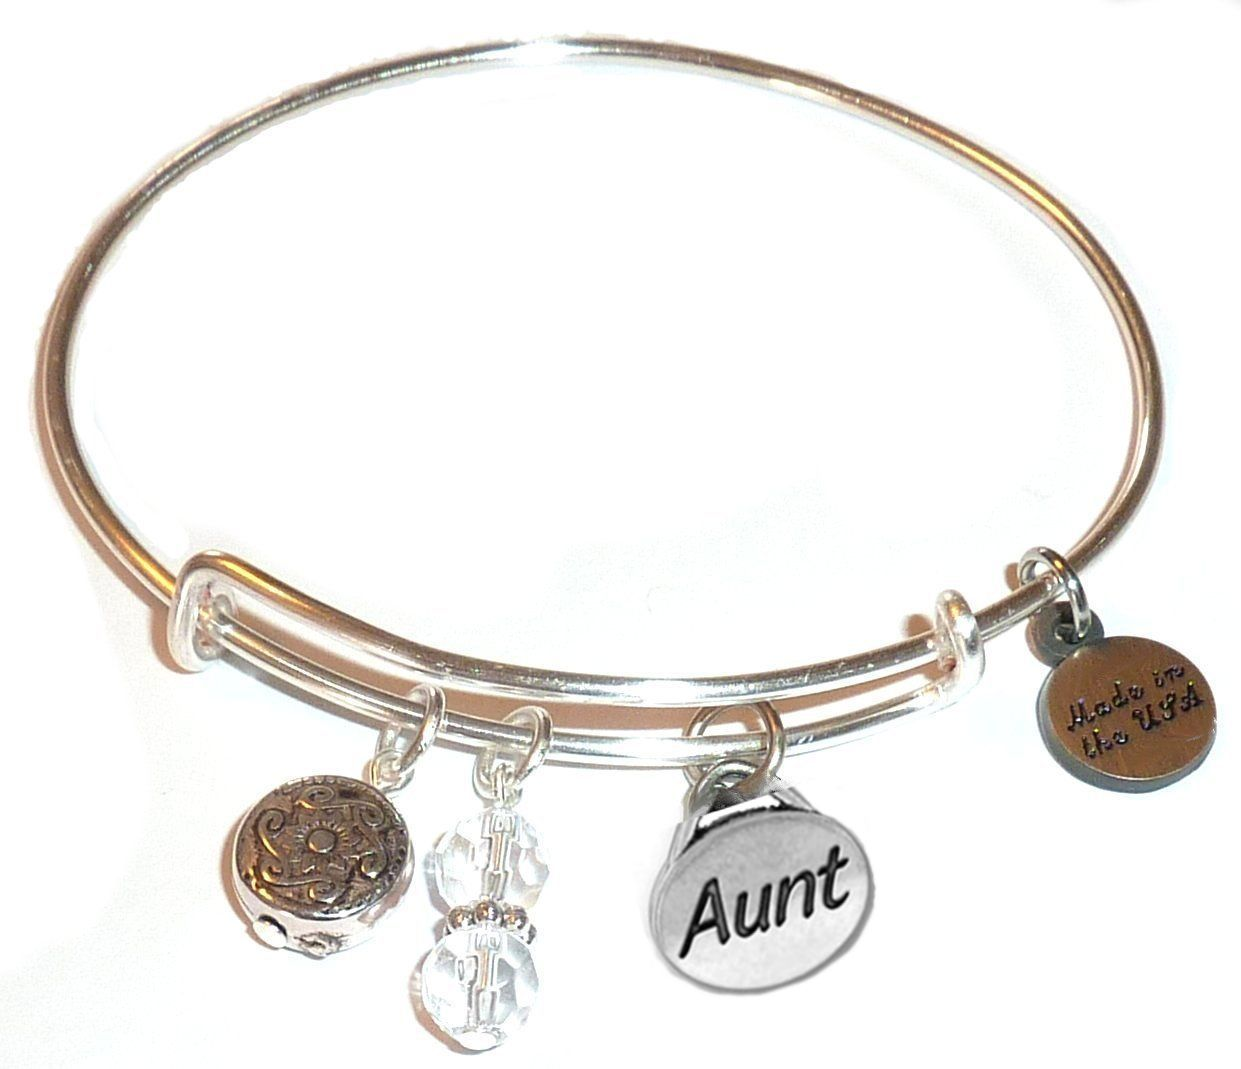 mother's day gift ideas - aunt bangle bracelet